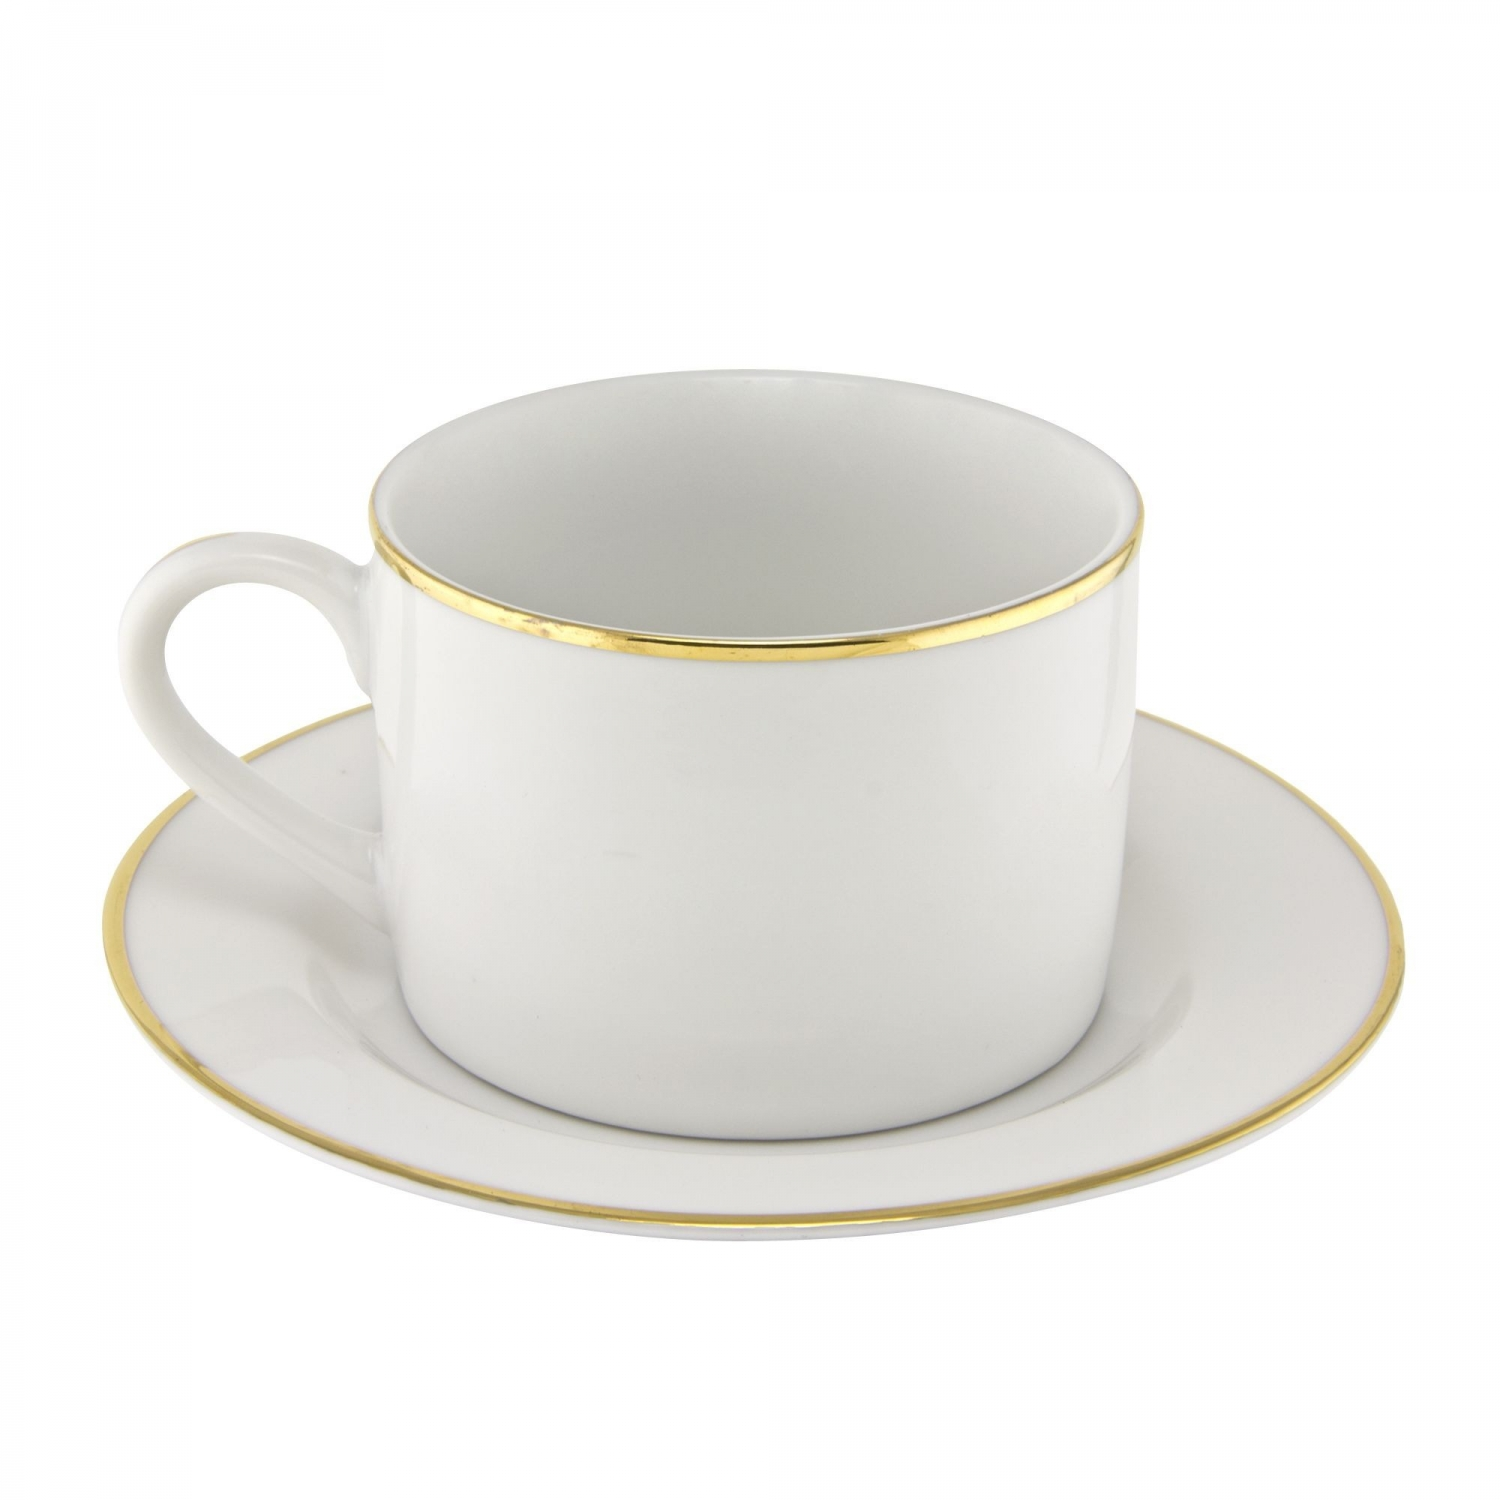 10 Strawberry Street GL0009 6 oz. Gold Line Rim Can Cup and Saucer